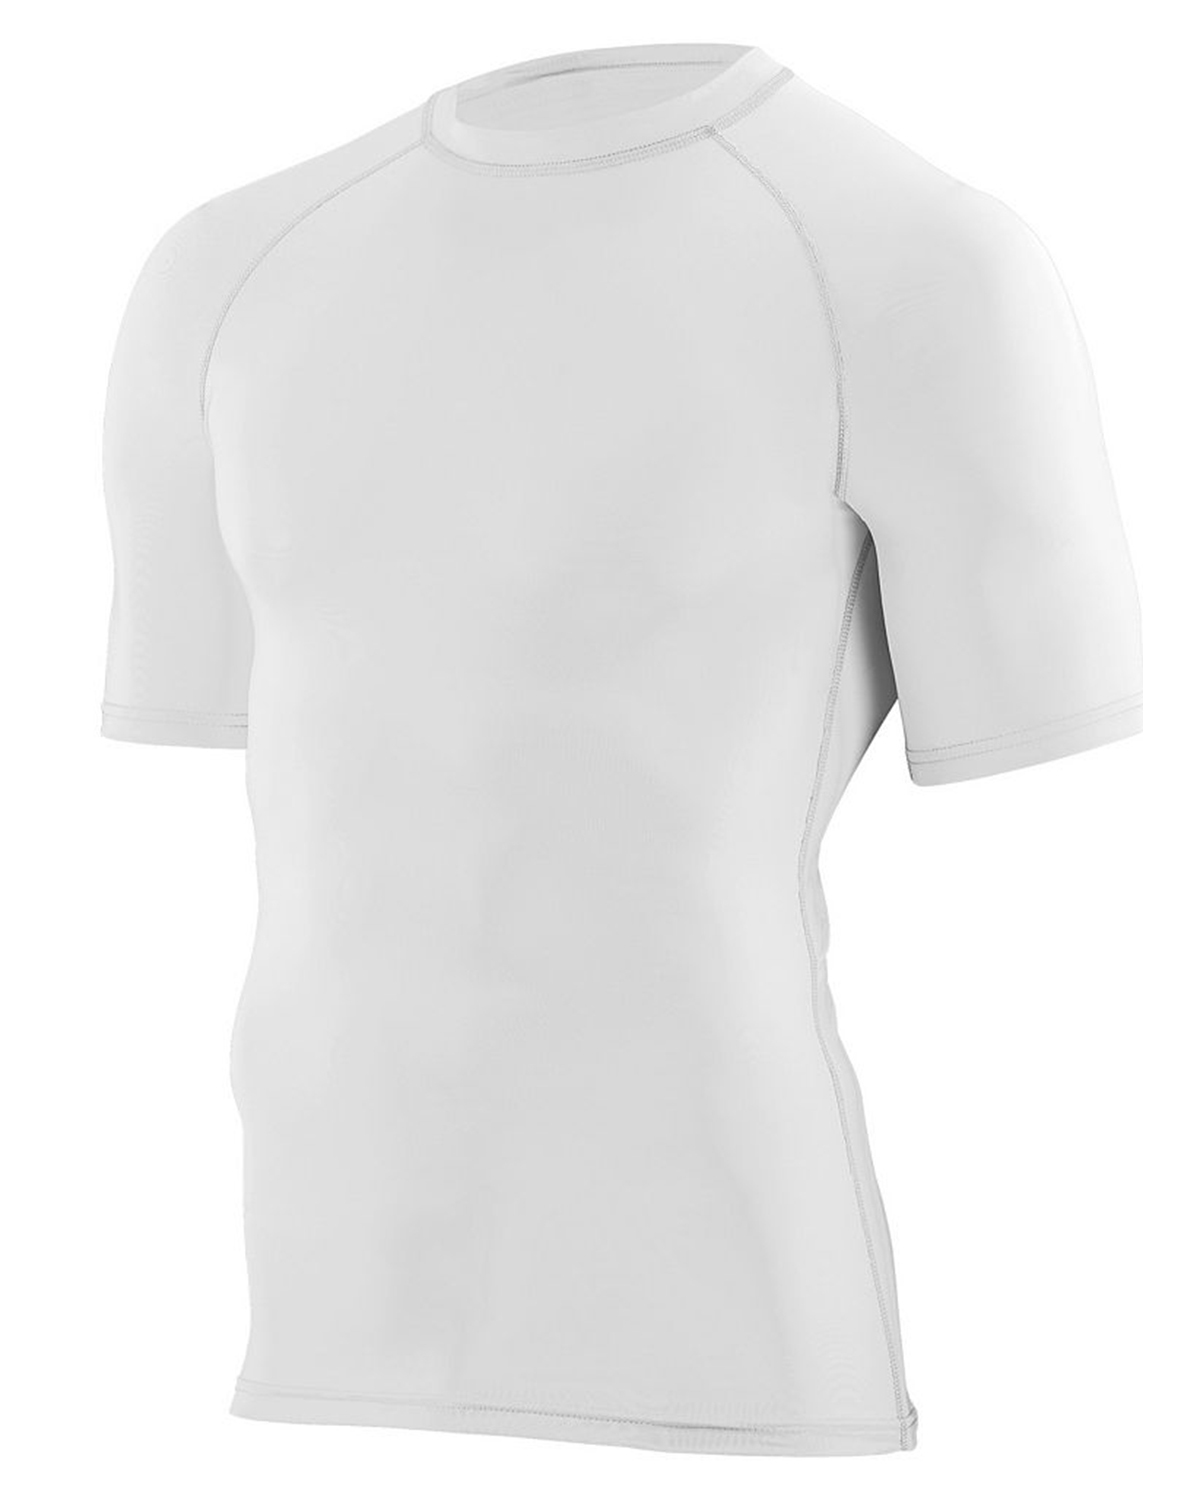 Augusta 2601 Boys Hyperform Compression Short Sleeve Shirt at GotApparel